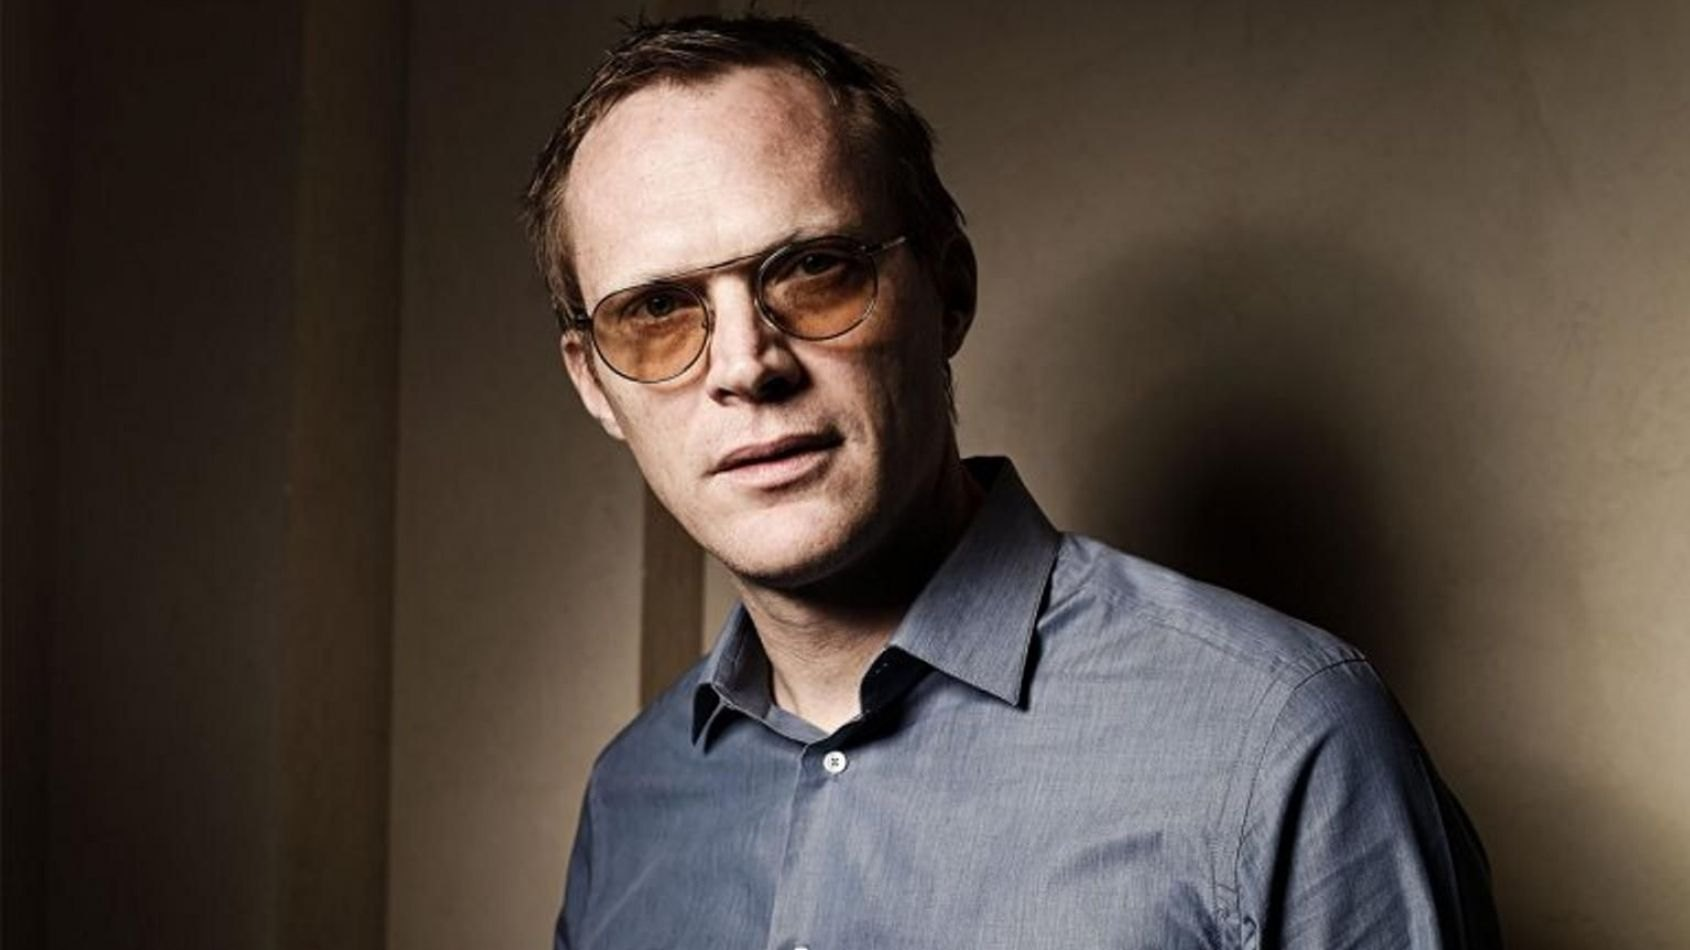 Paul Bettany rejoint le casting du spin-off sur Han Solo !